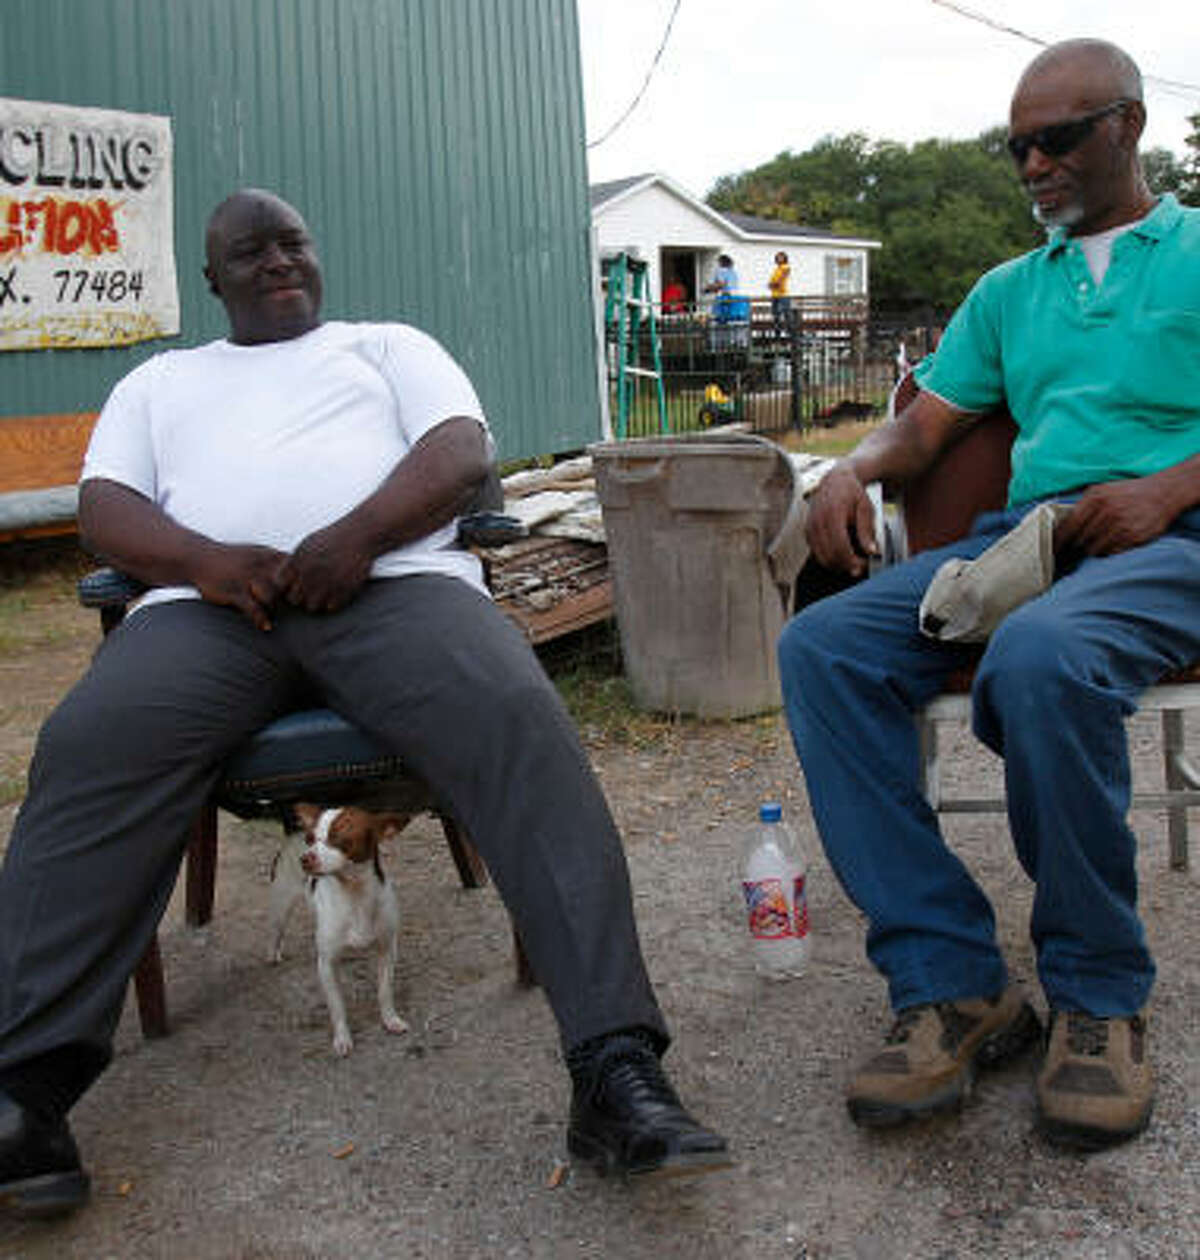 Sid Johnson, left, visits with Kenneth Watson outside Johnson's business Thursday in Waller. Johnson is proud of helping clean up county government.